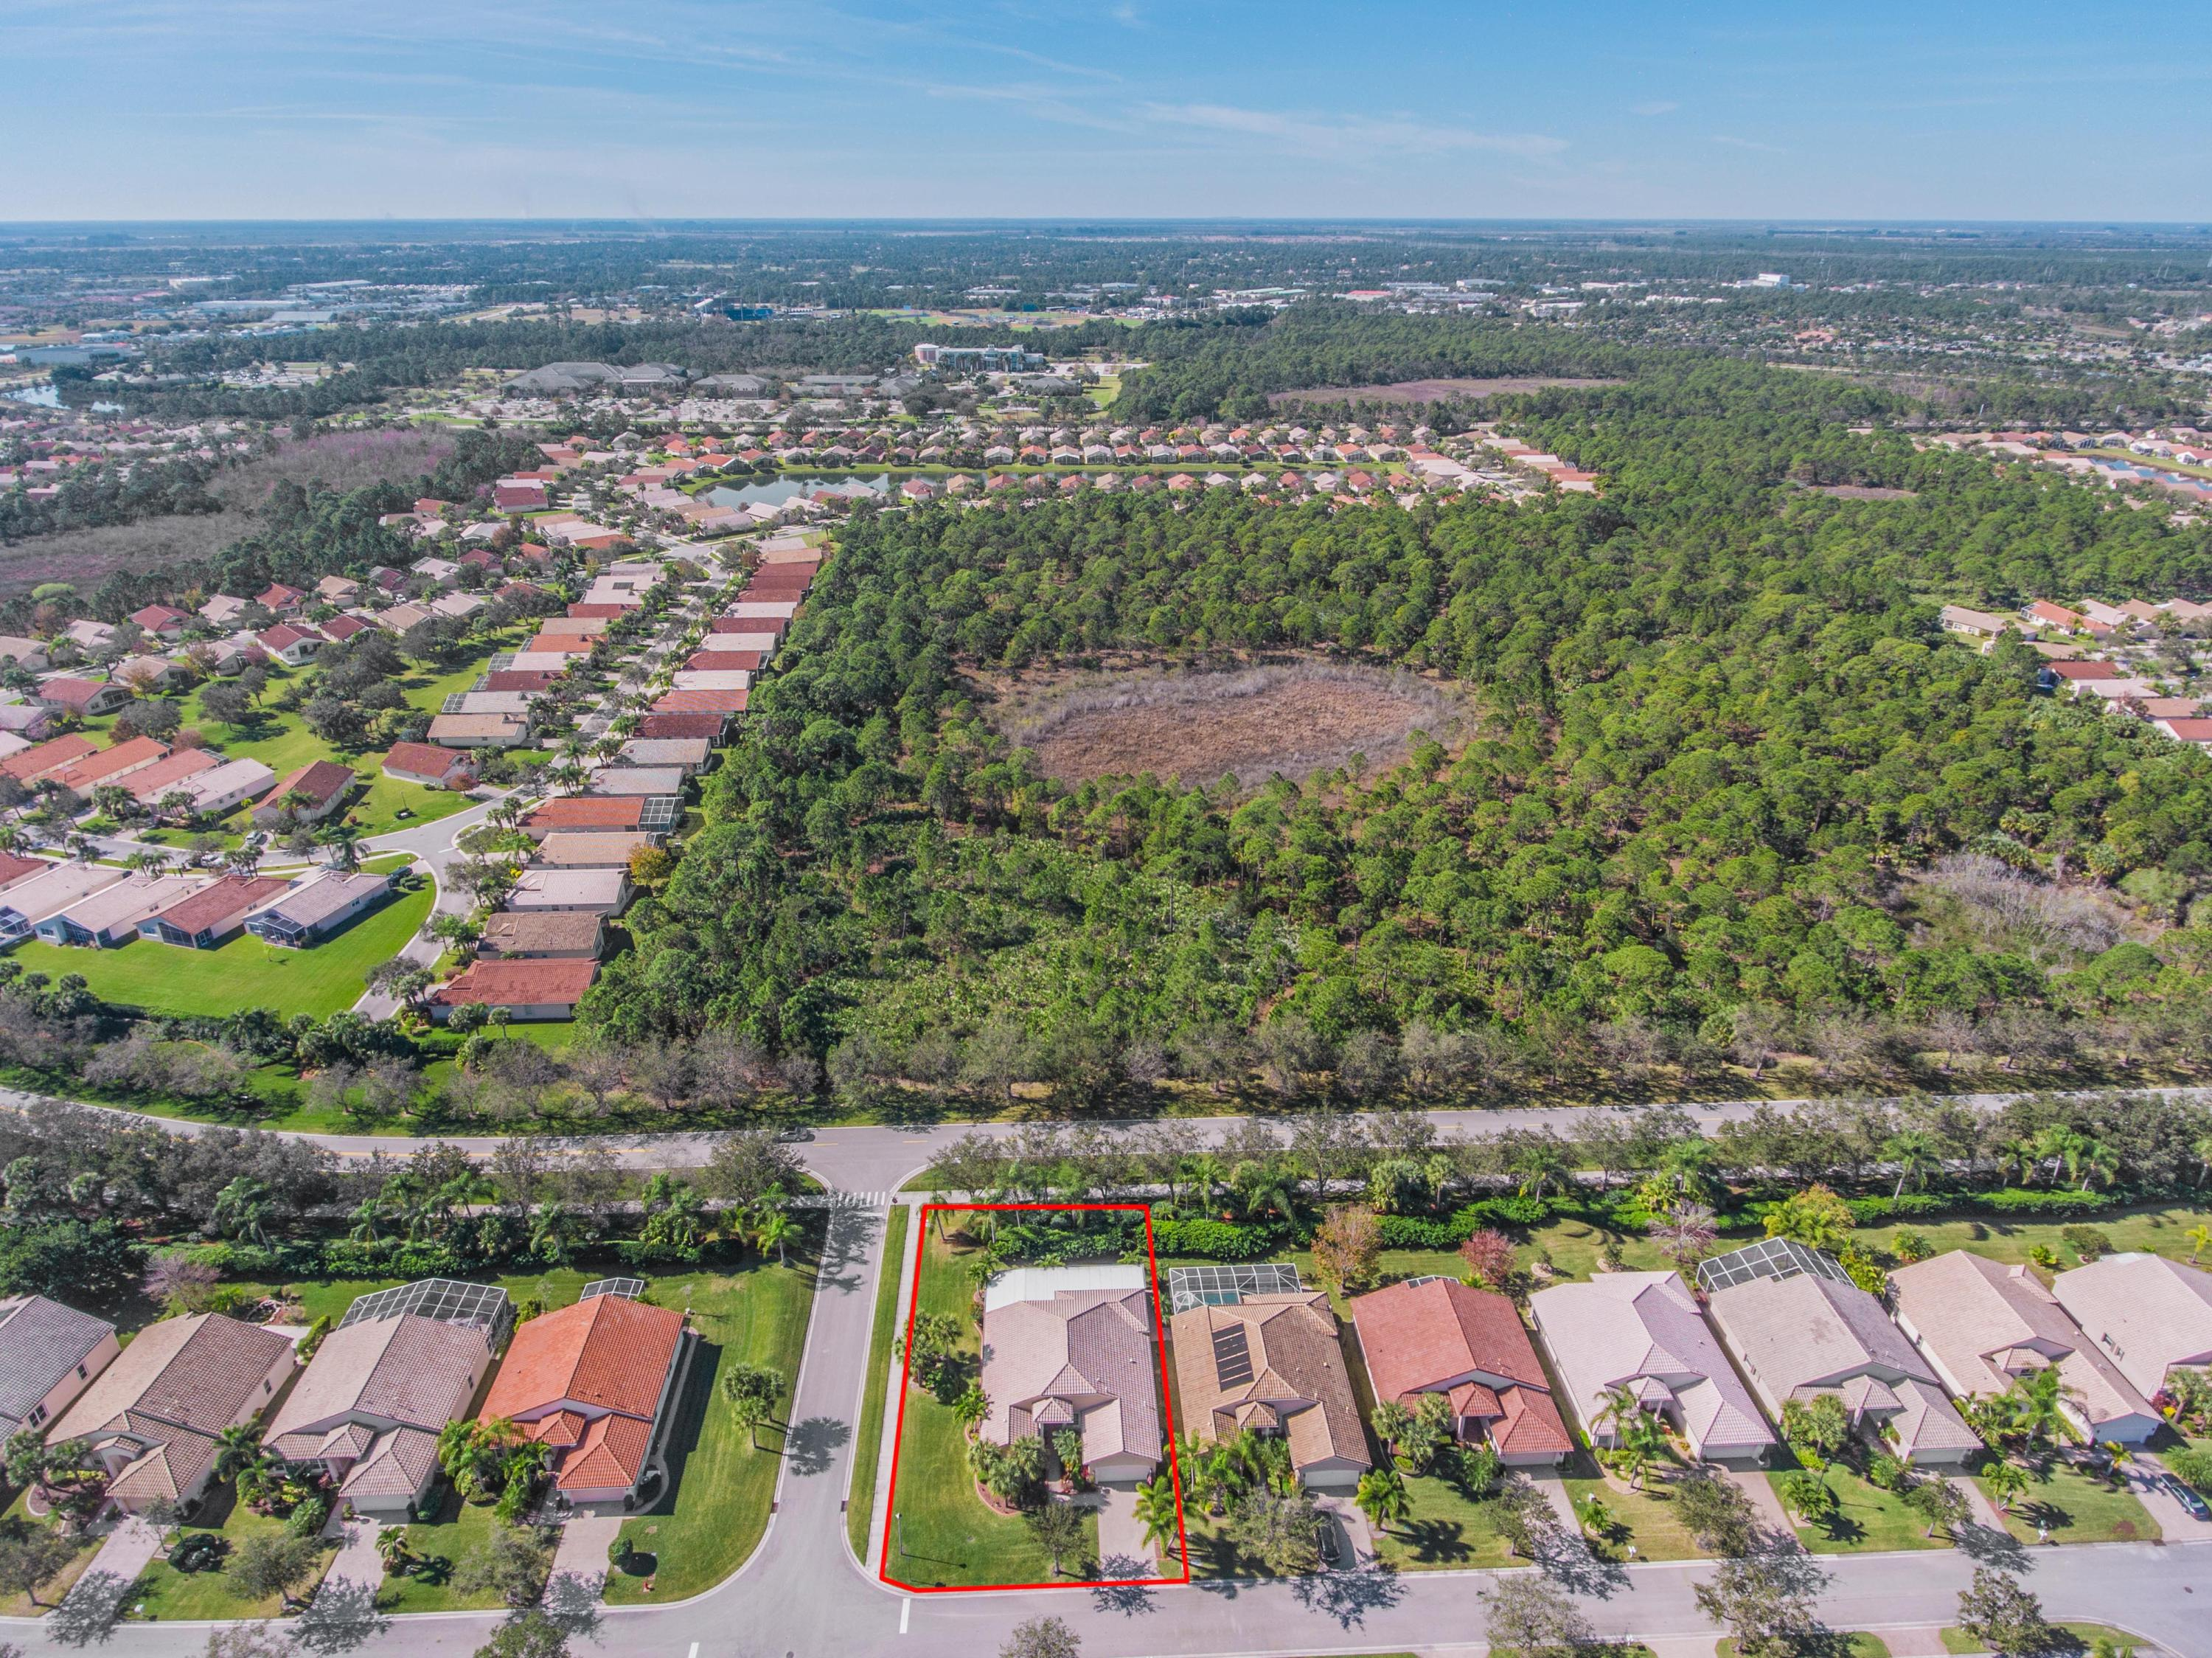 THE CASCADES AT ST LUCIE WEST-PHASE ONE-ST LUCIE WEST PLAT NO. 110-LOT383 (OR 2083-2890)